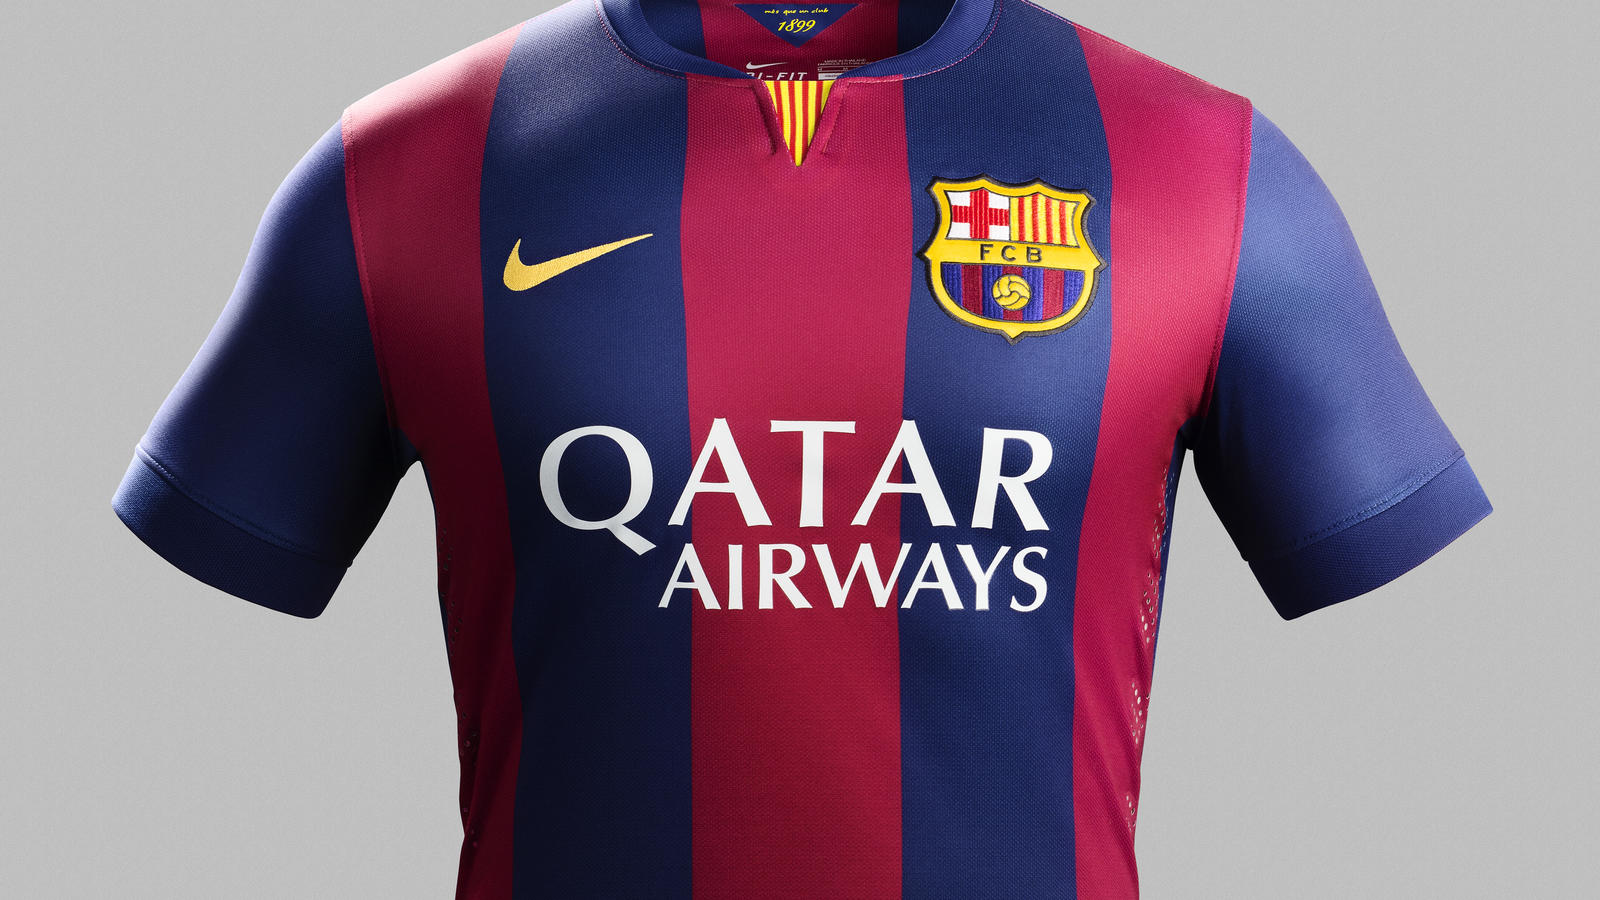 fa14_match_barcelona_home